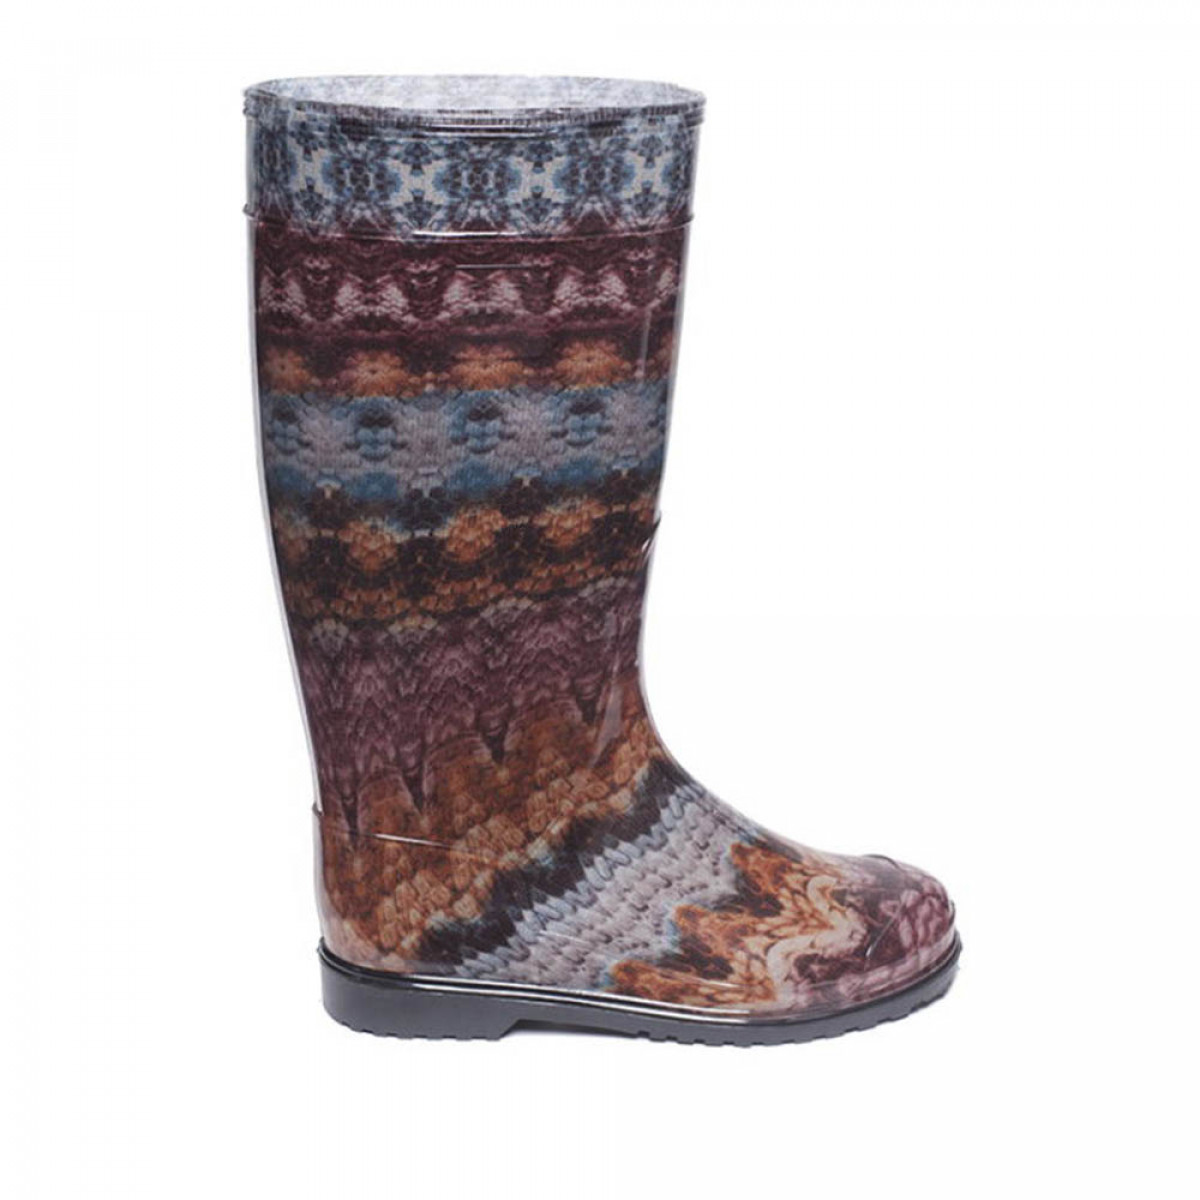 Women's High Wellies with print, Brown lace